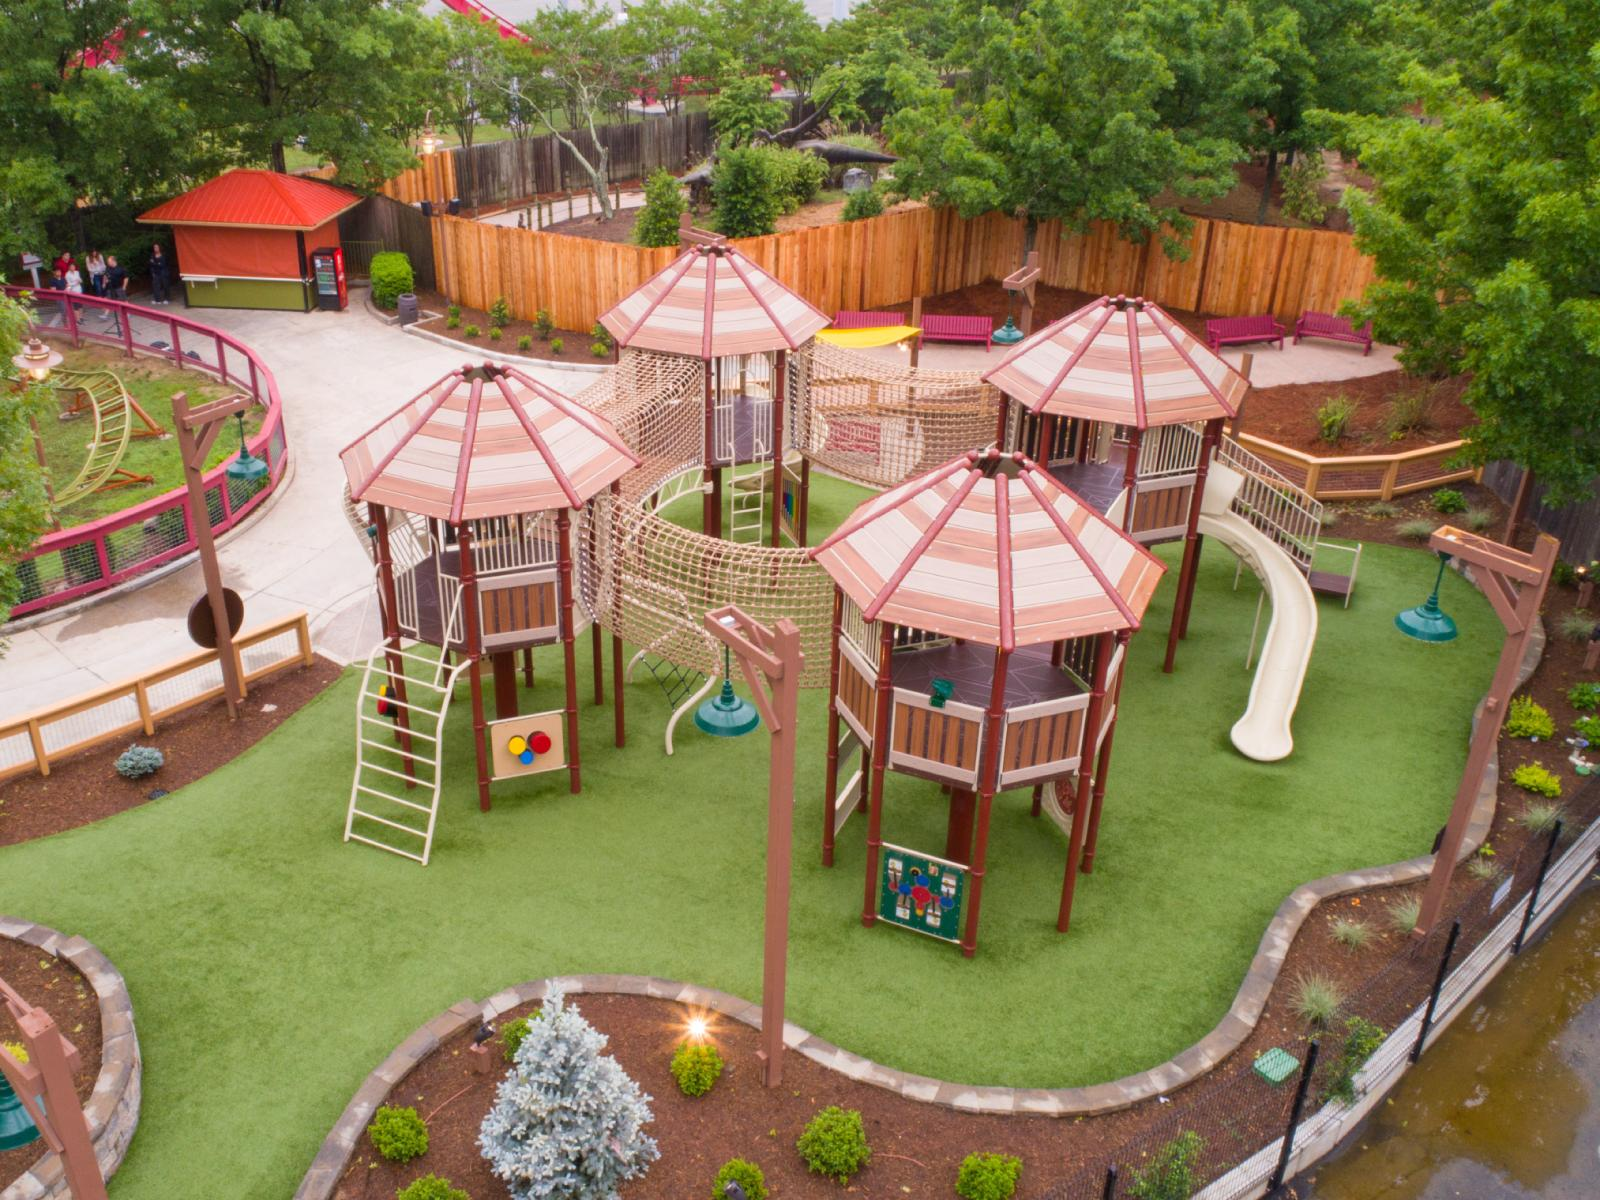 Proper Playground Maintenance For Safety